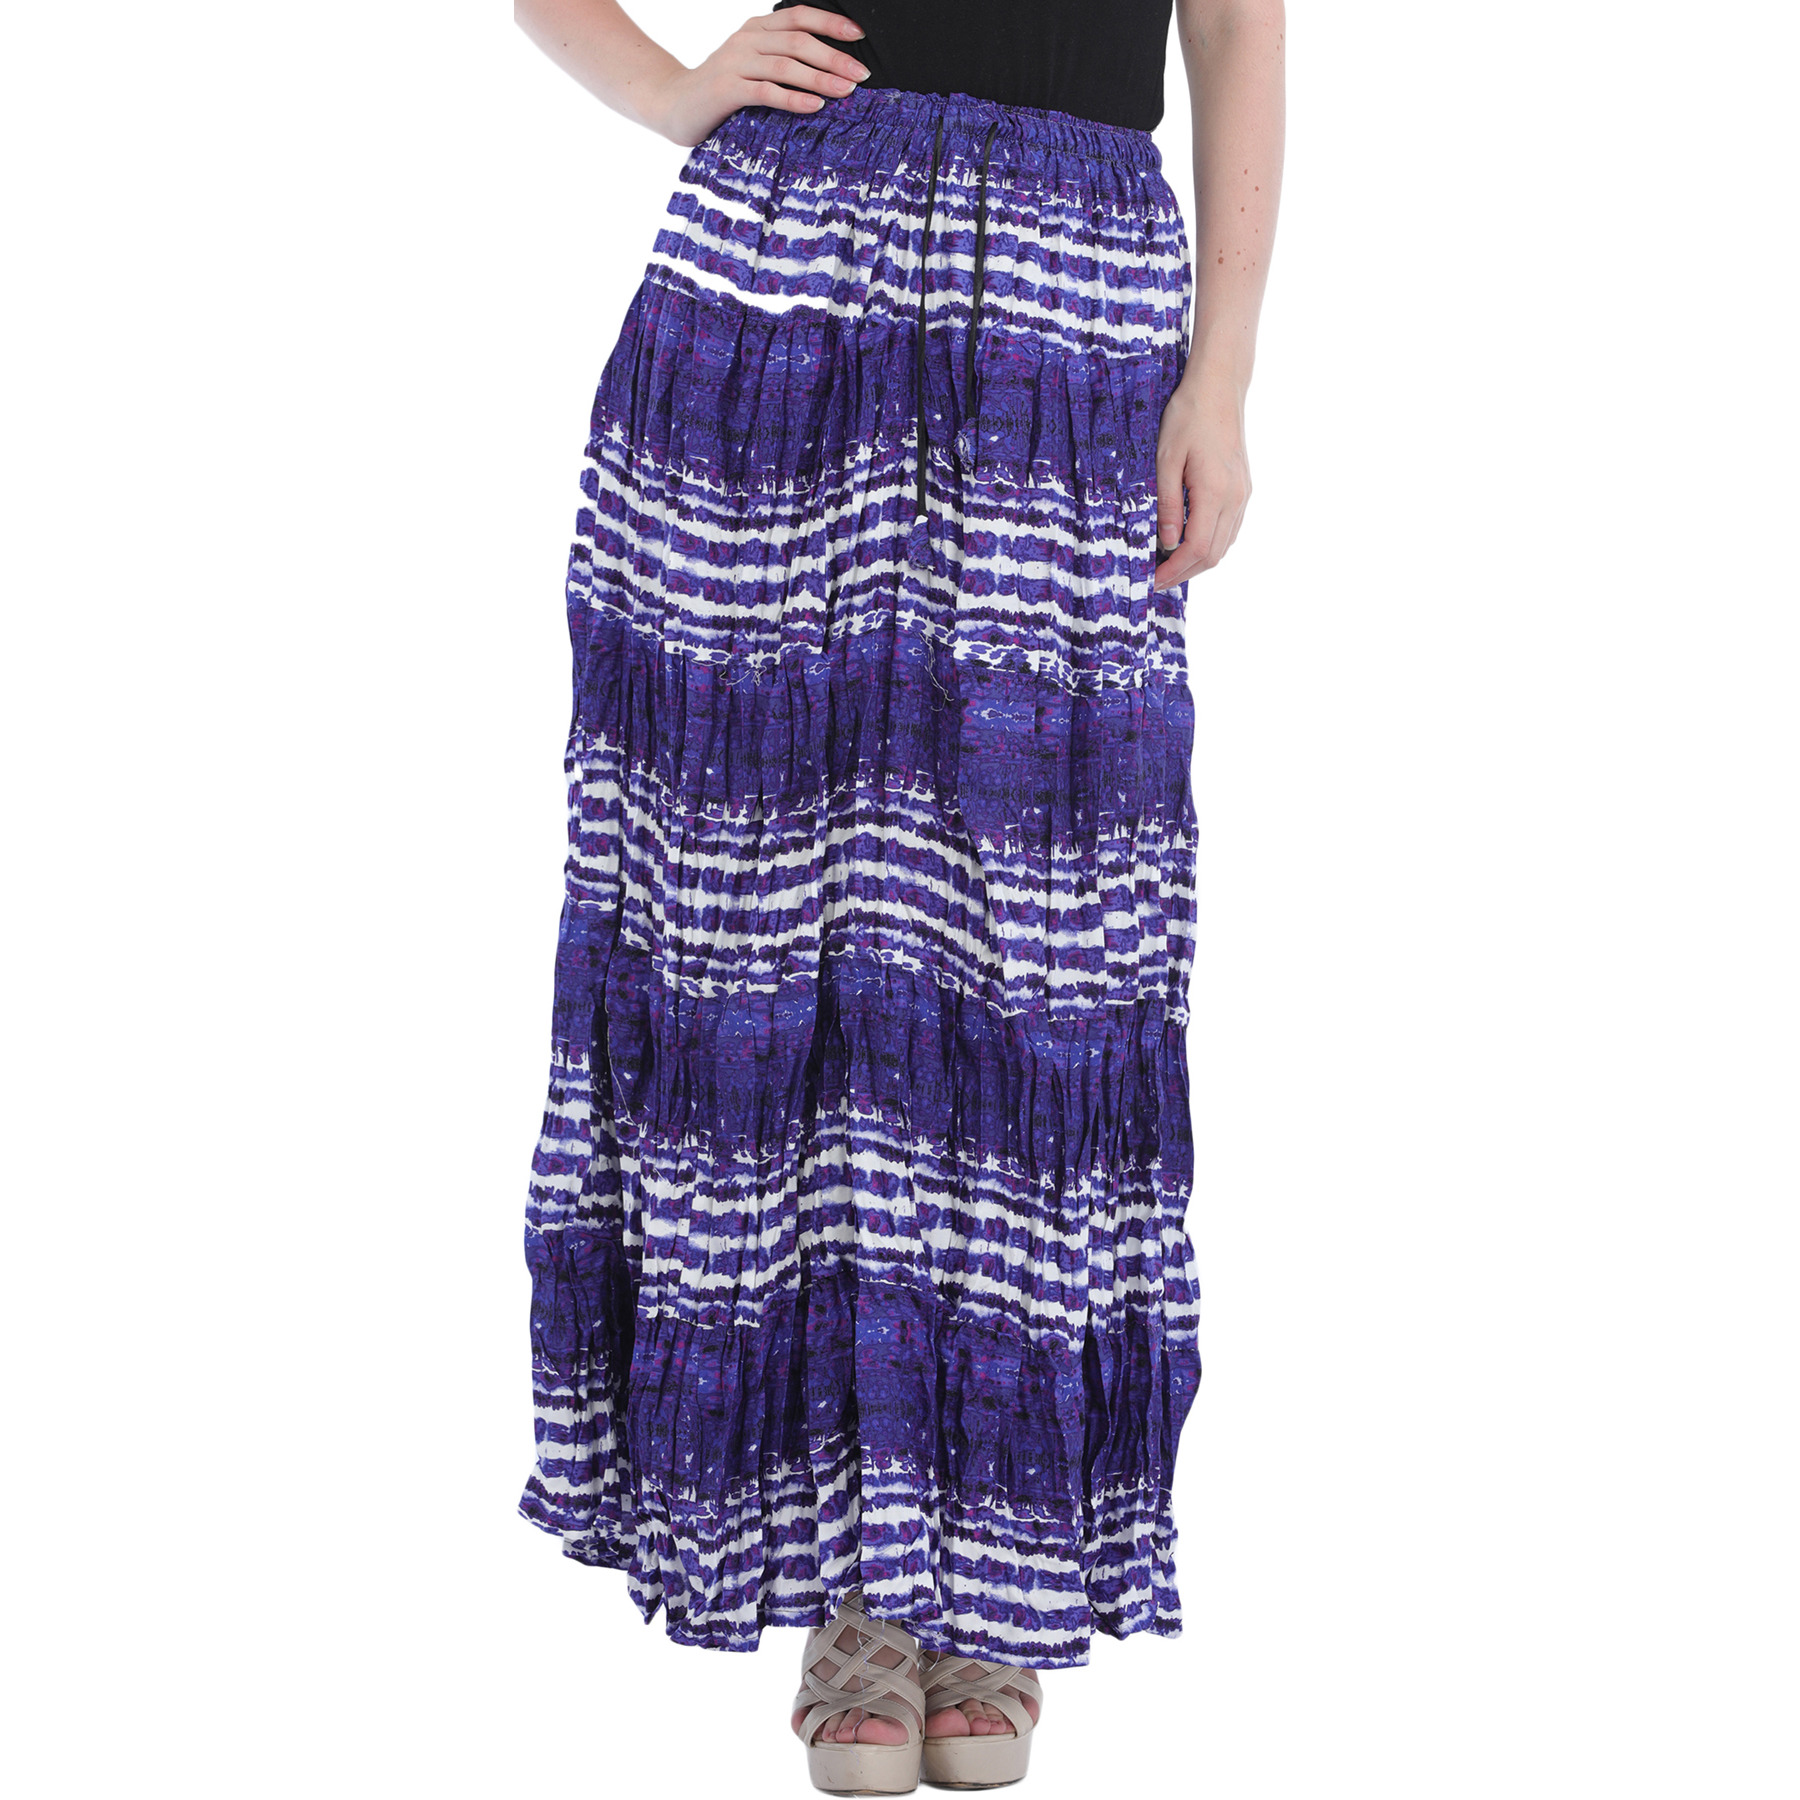 Spectrum-Blue Printed Elastic Long Skirt